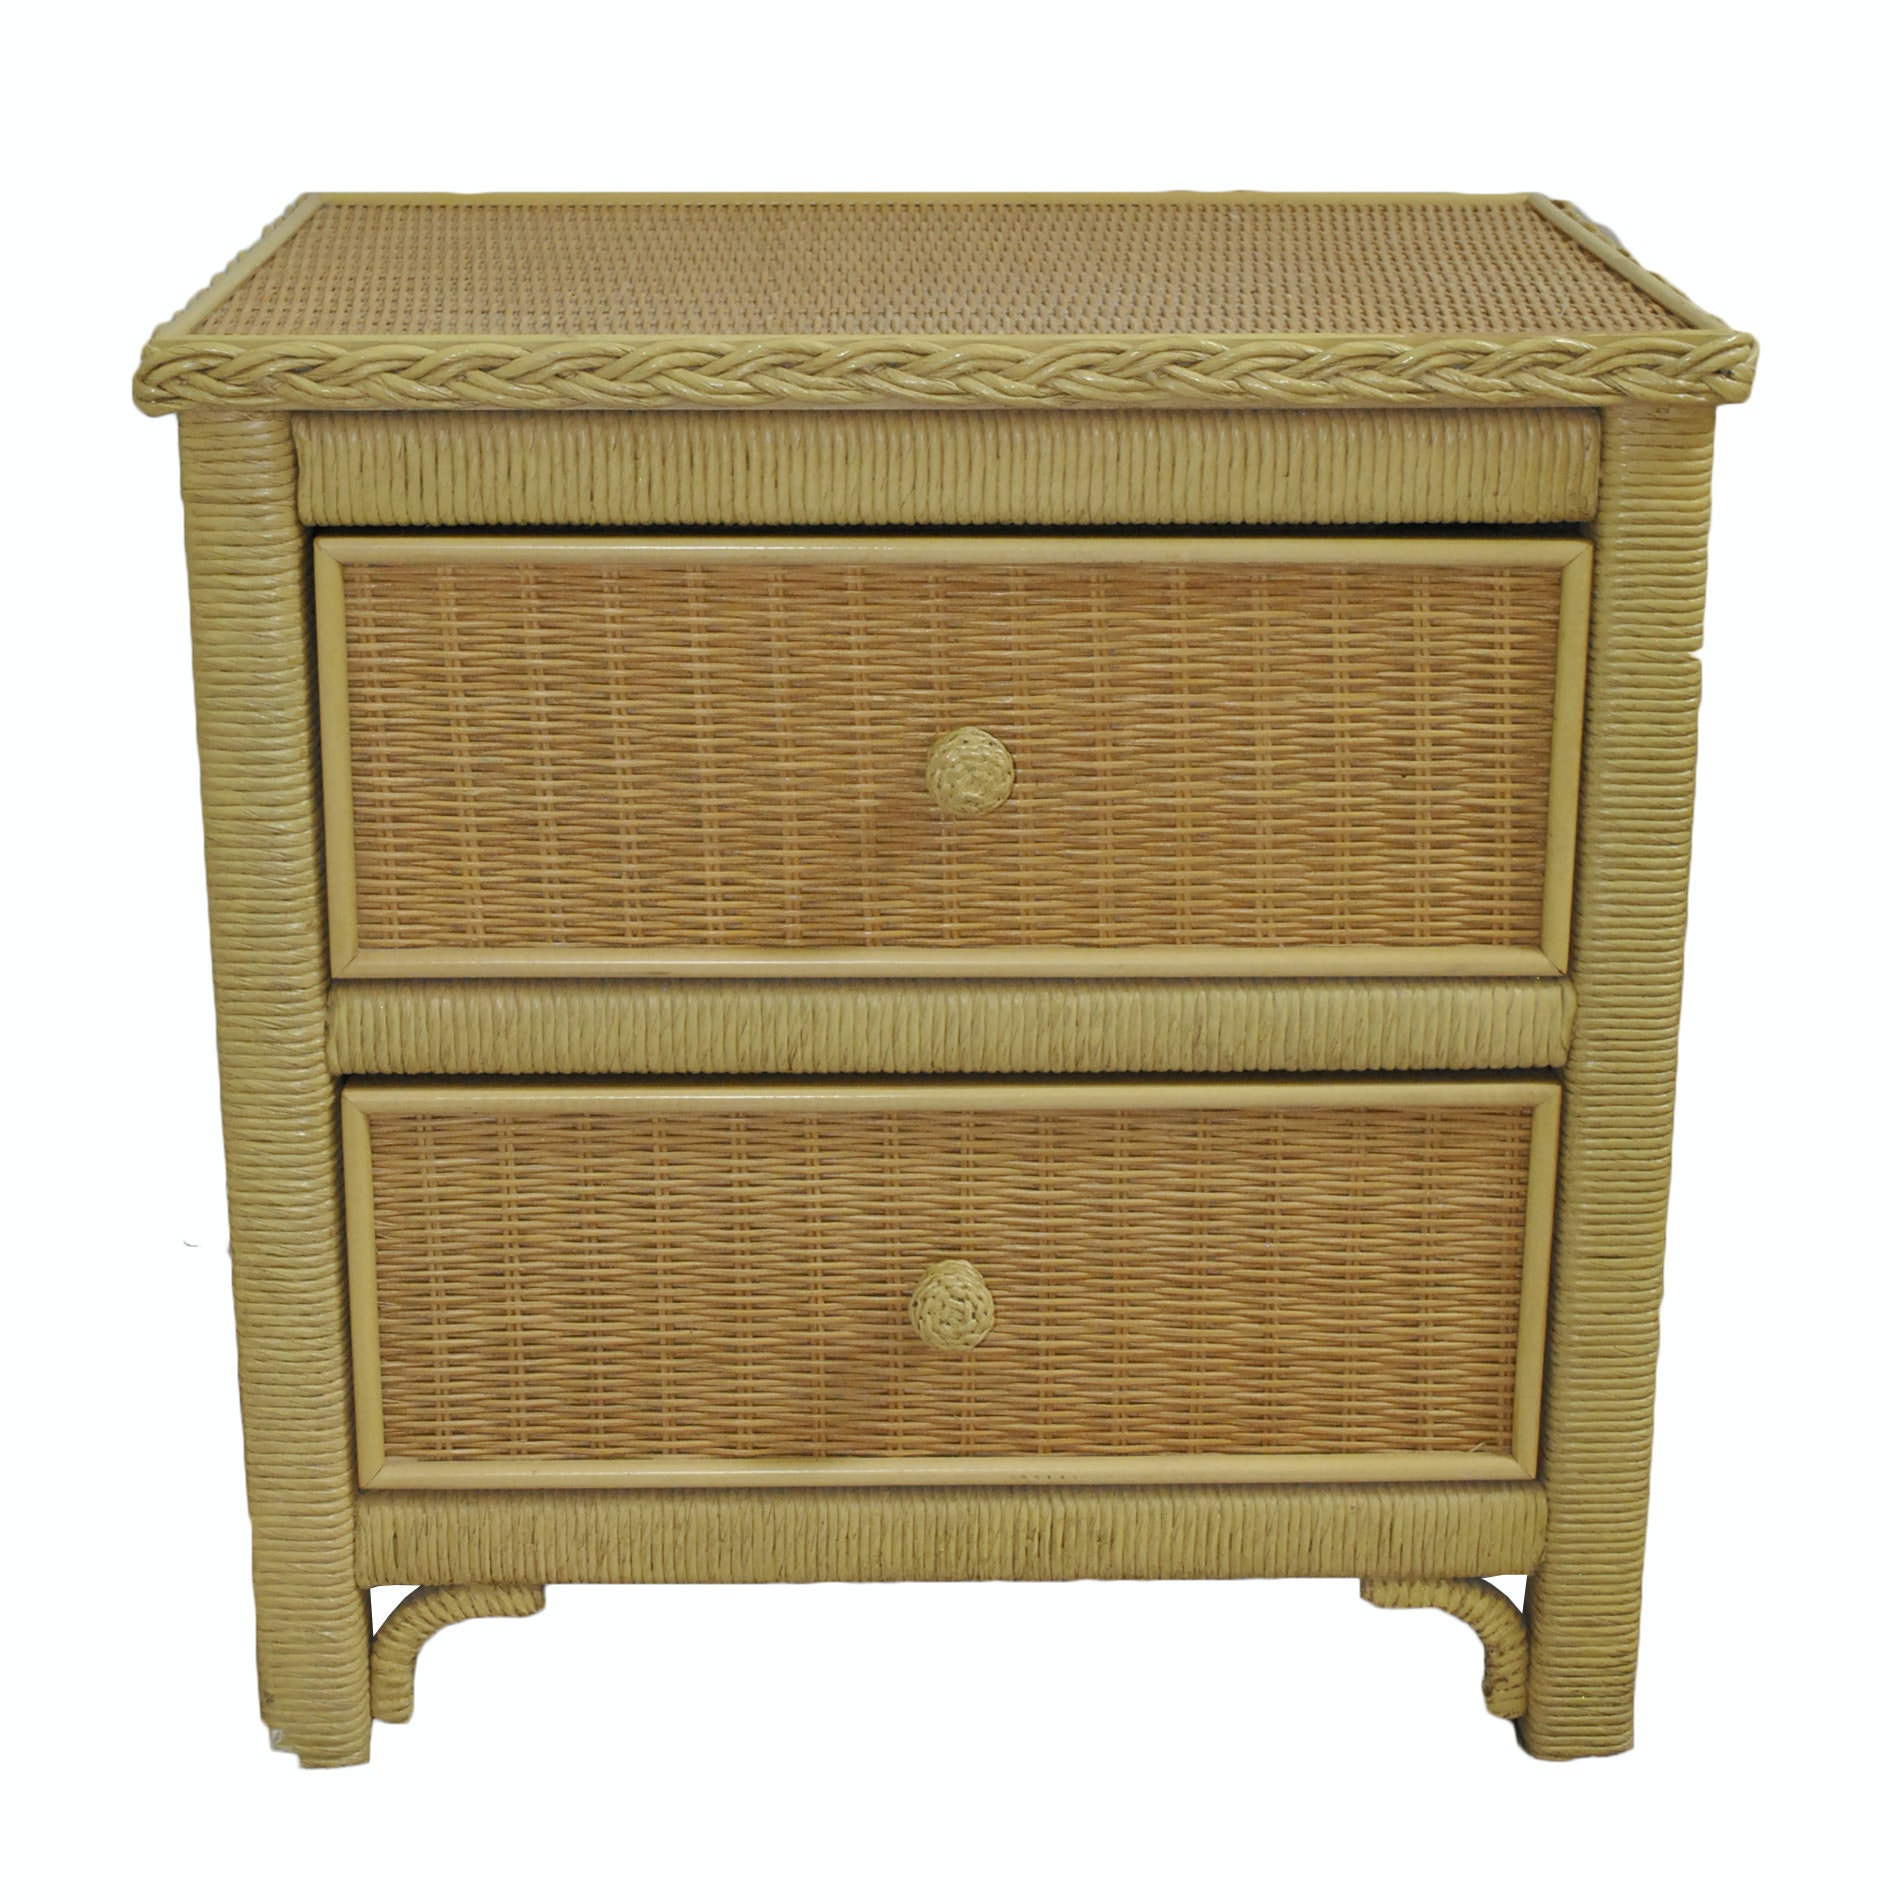 Woven Wicker Two Drawer Nightstand